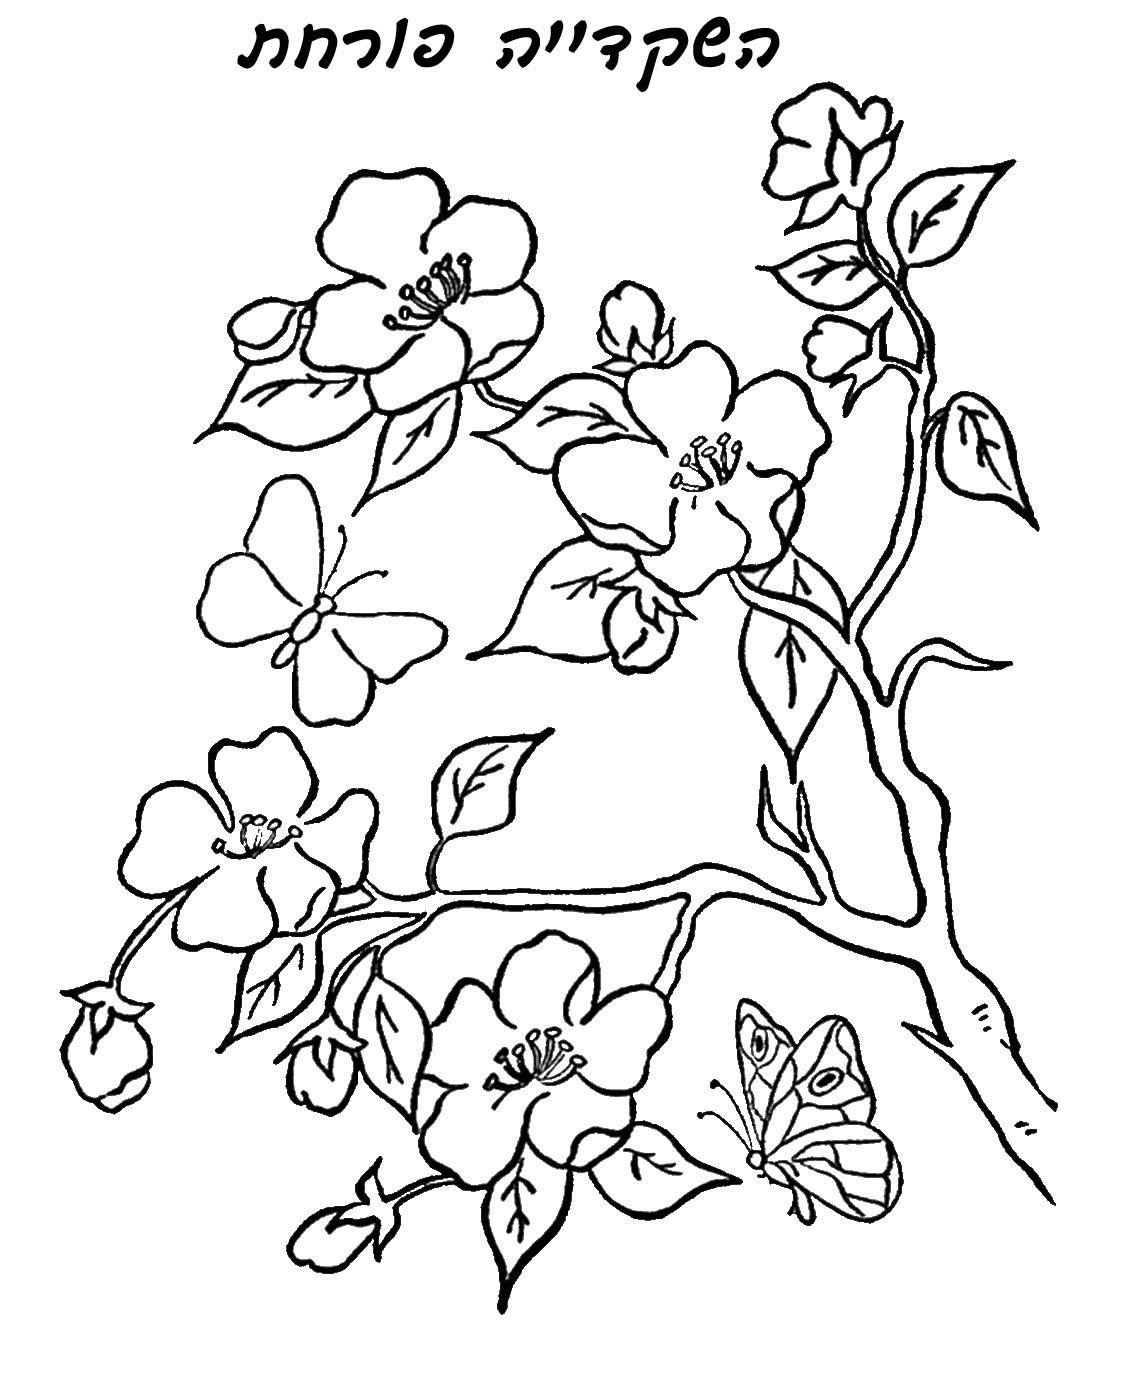 Tu Bshevat Coloring Pages Sketch Coloring Page Tu B Shevat Coloring Pages